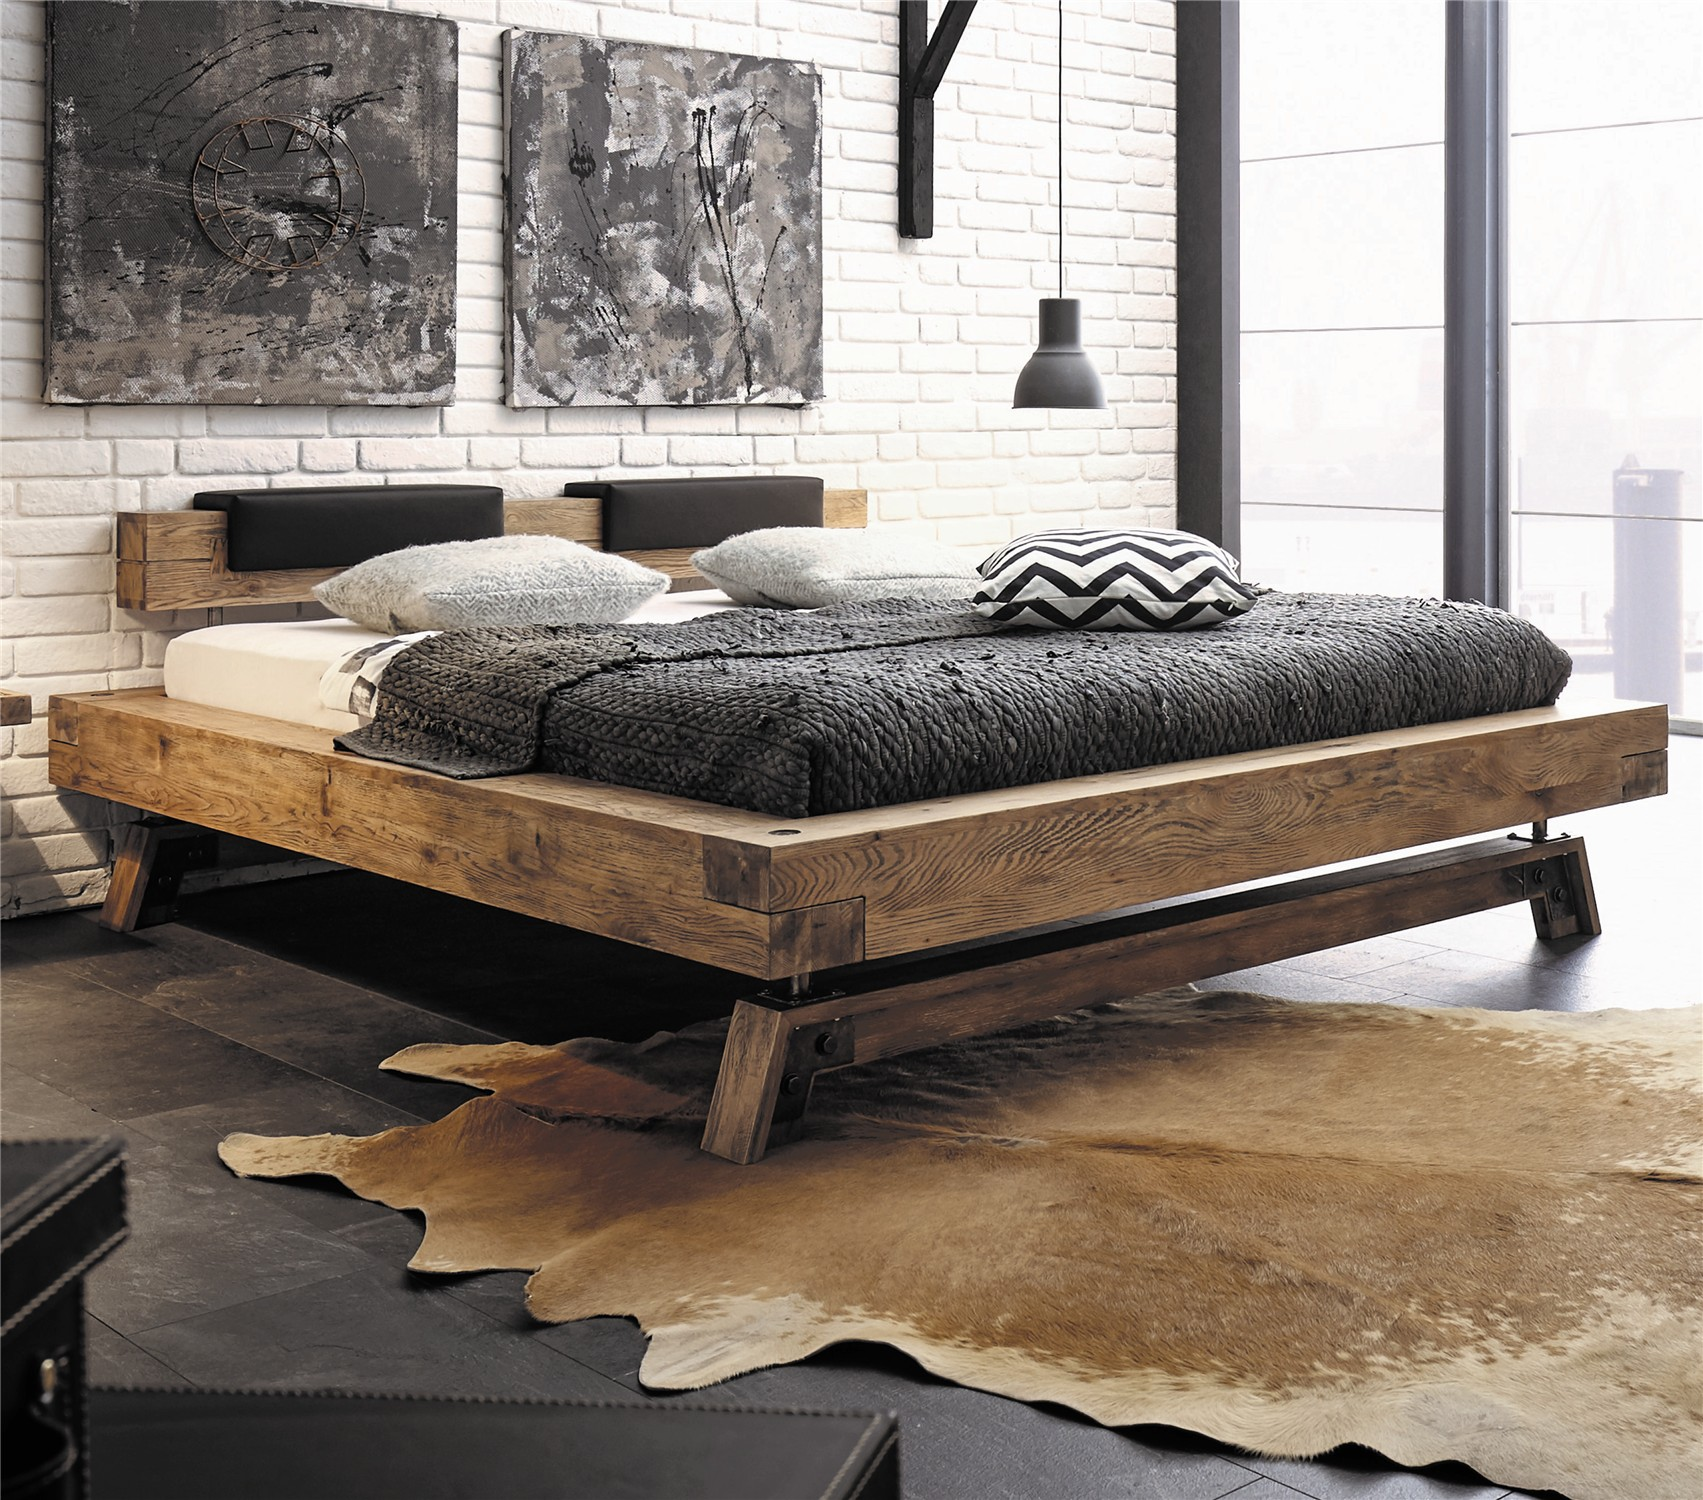 contemporary designer beds hasena bloc stabil inca nakio character solid oak in vintage. Black Bedroom Furniture Sets. Home Design Ideas